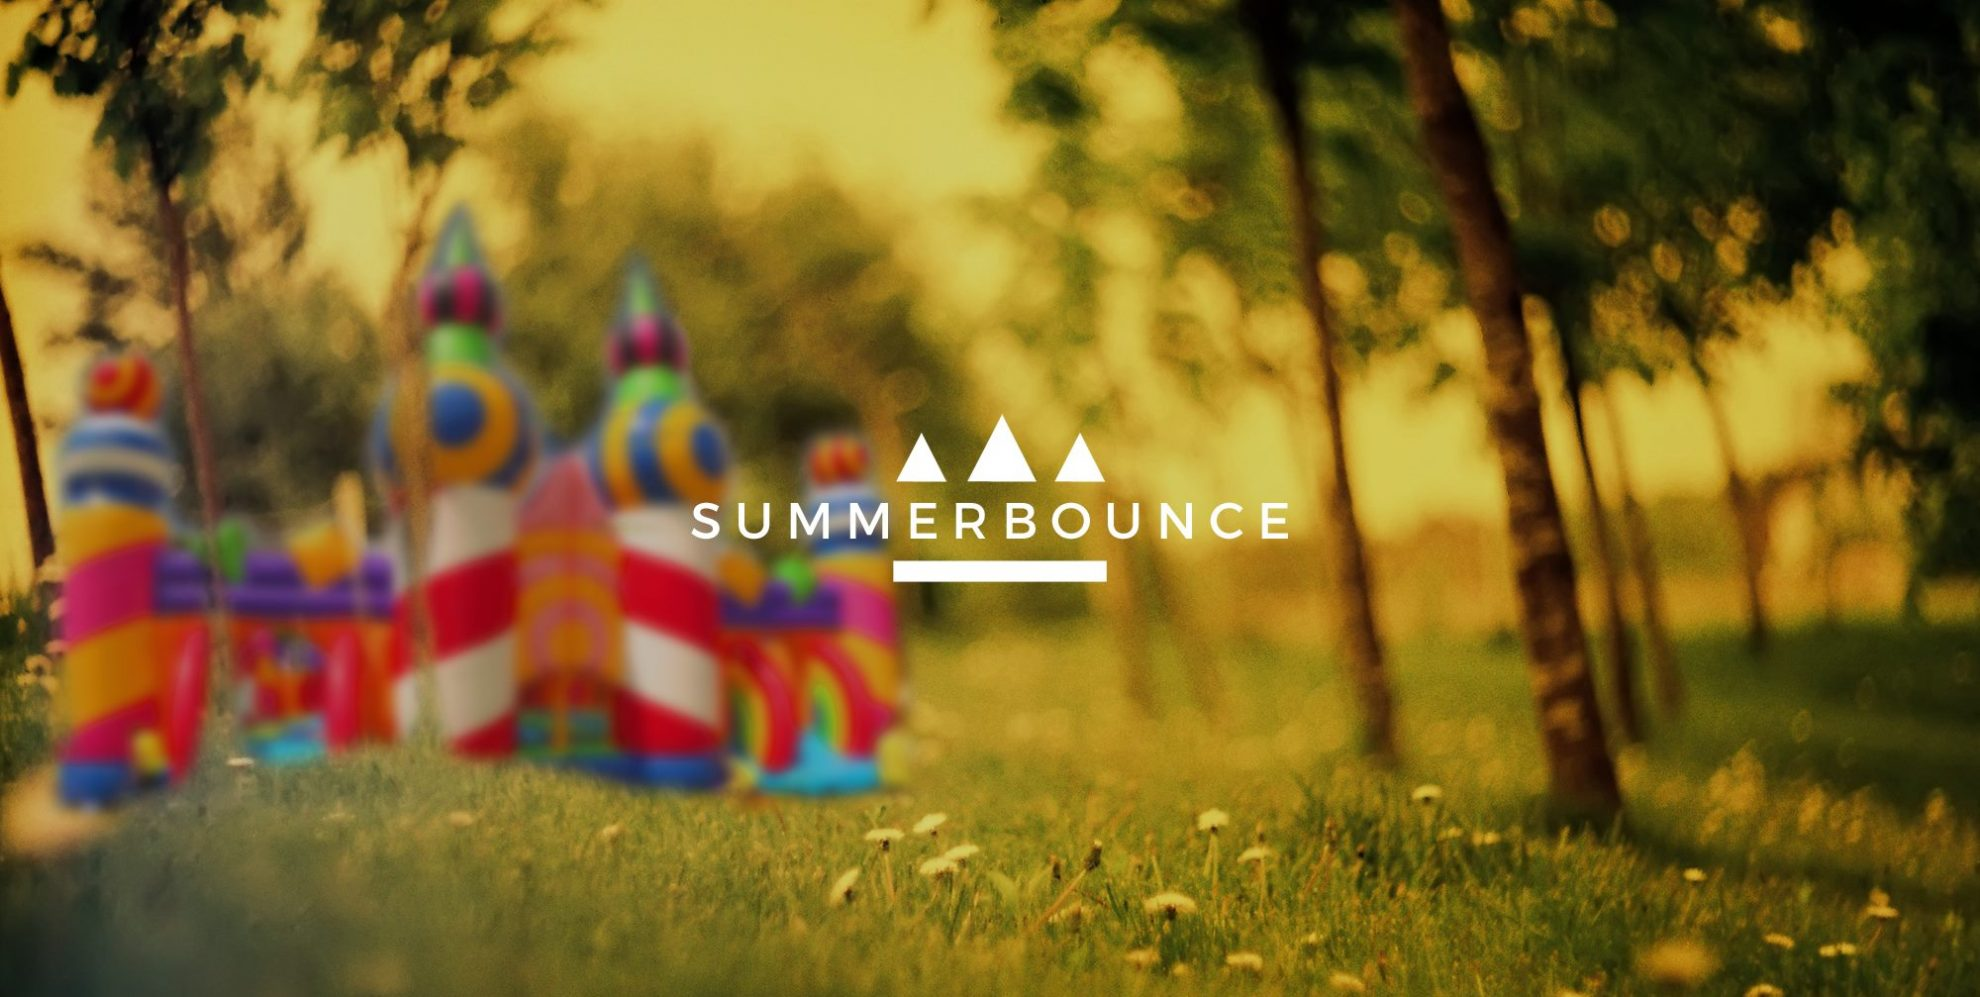 SummerBounce